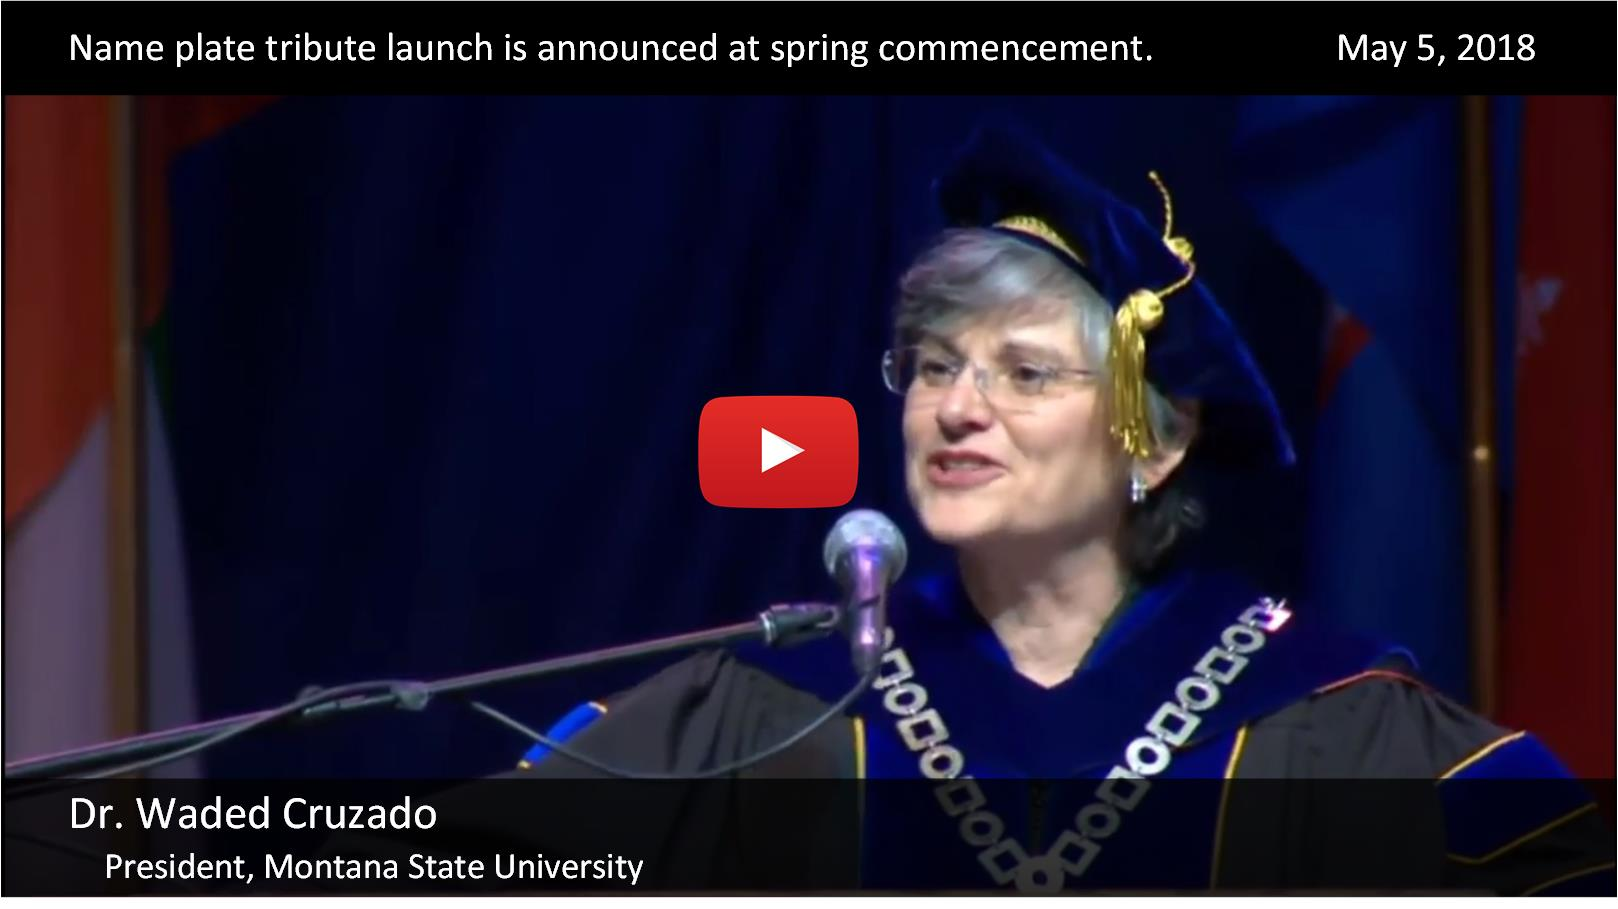 RadSat Commencement Announcement - May 5, 2018